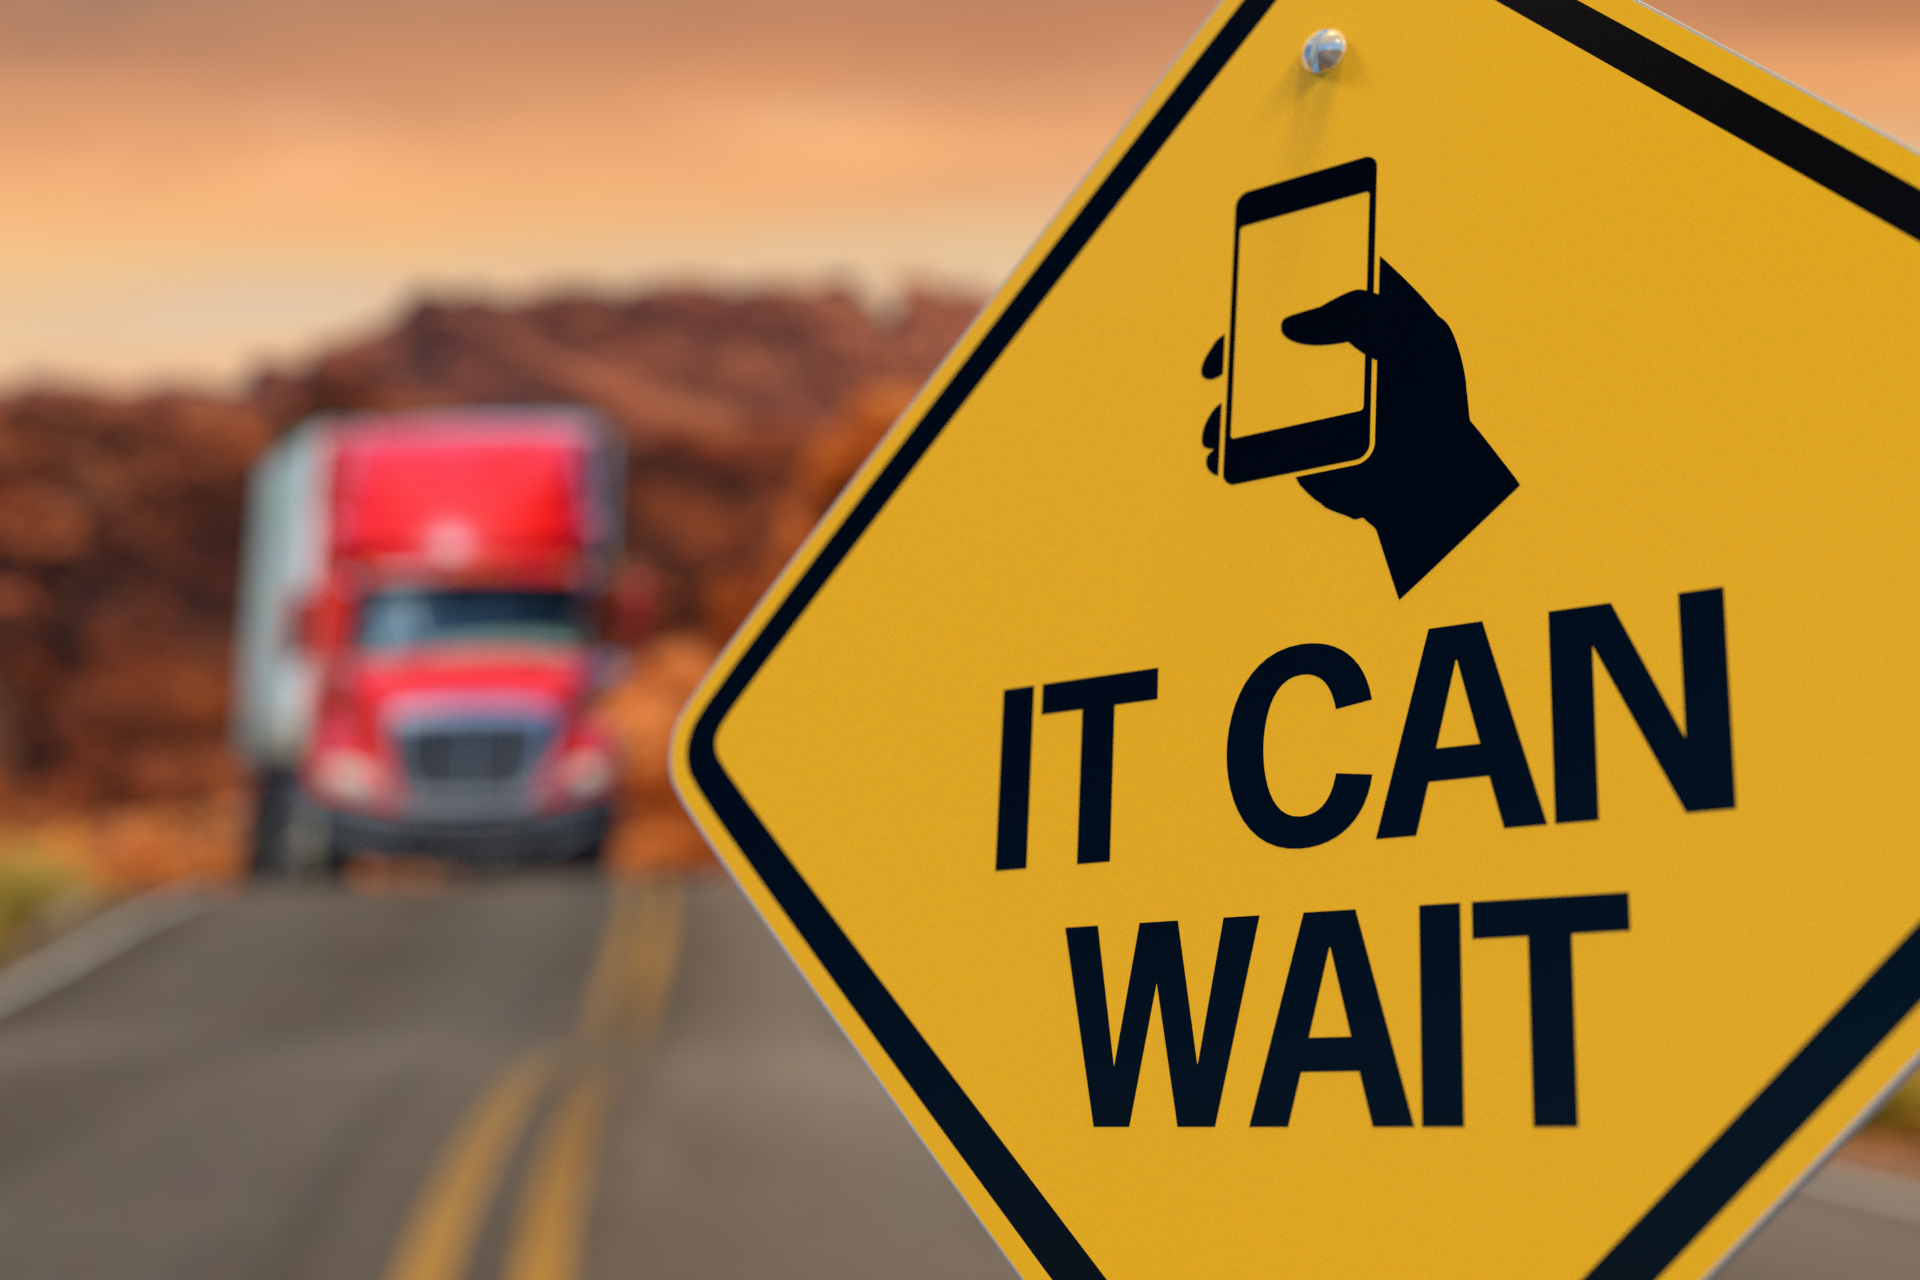 Texting Can Wait Sign Free Image Download